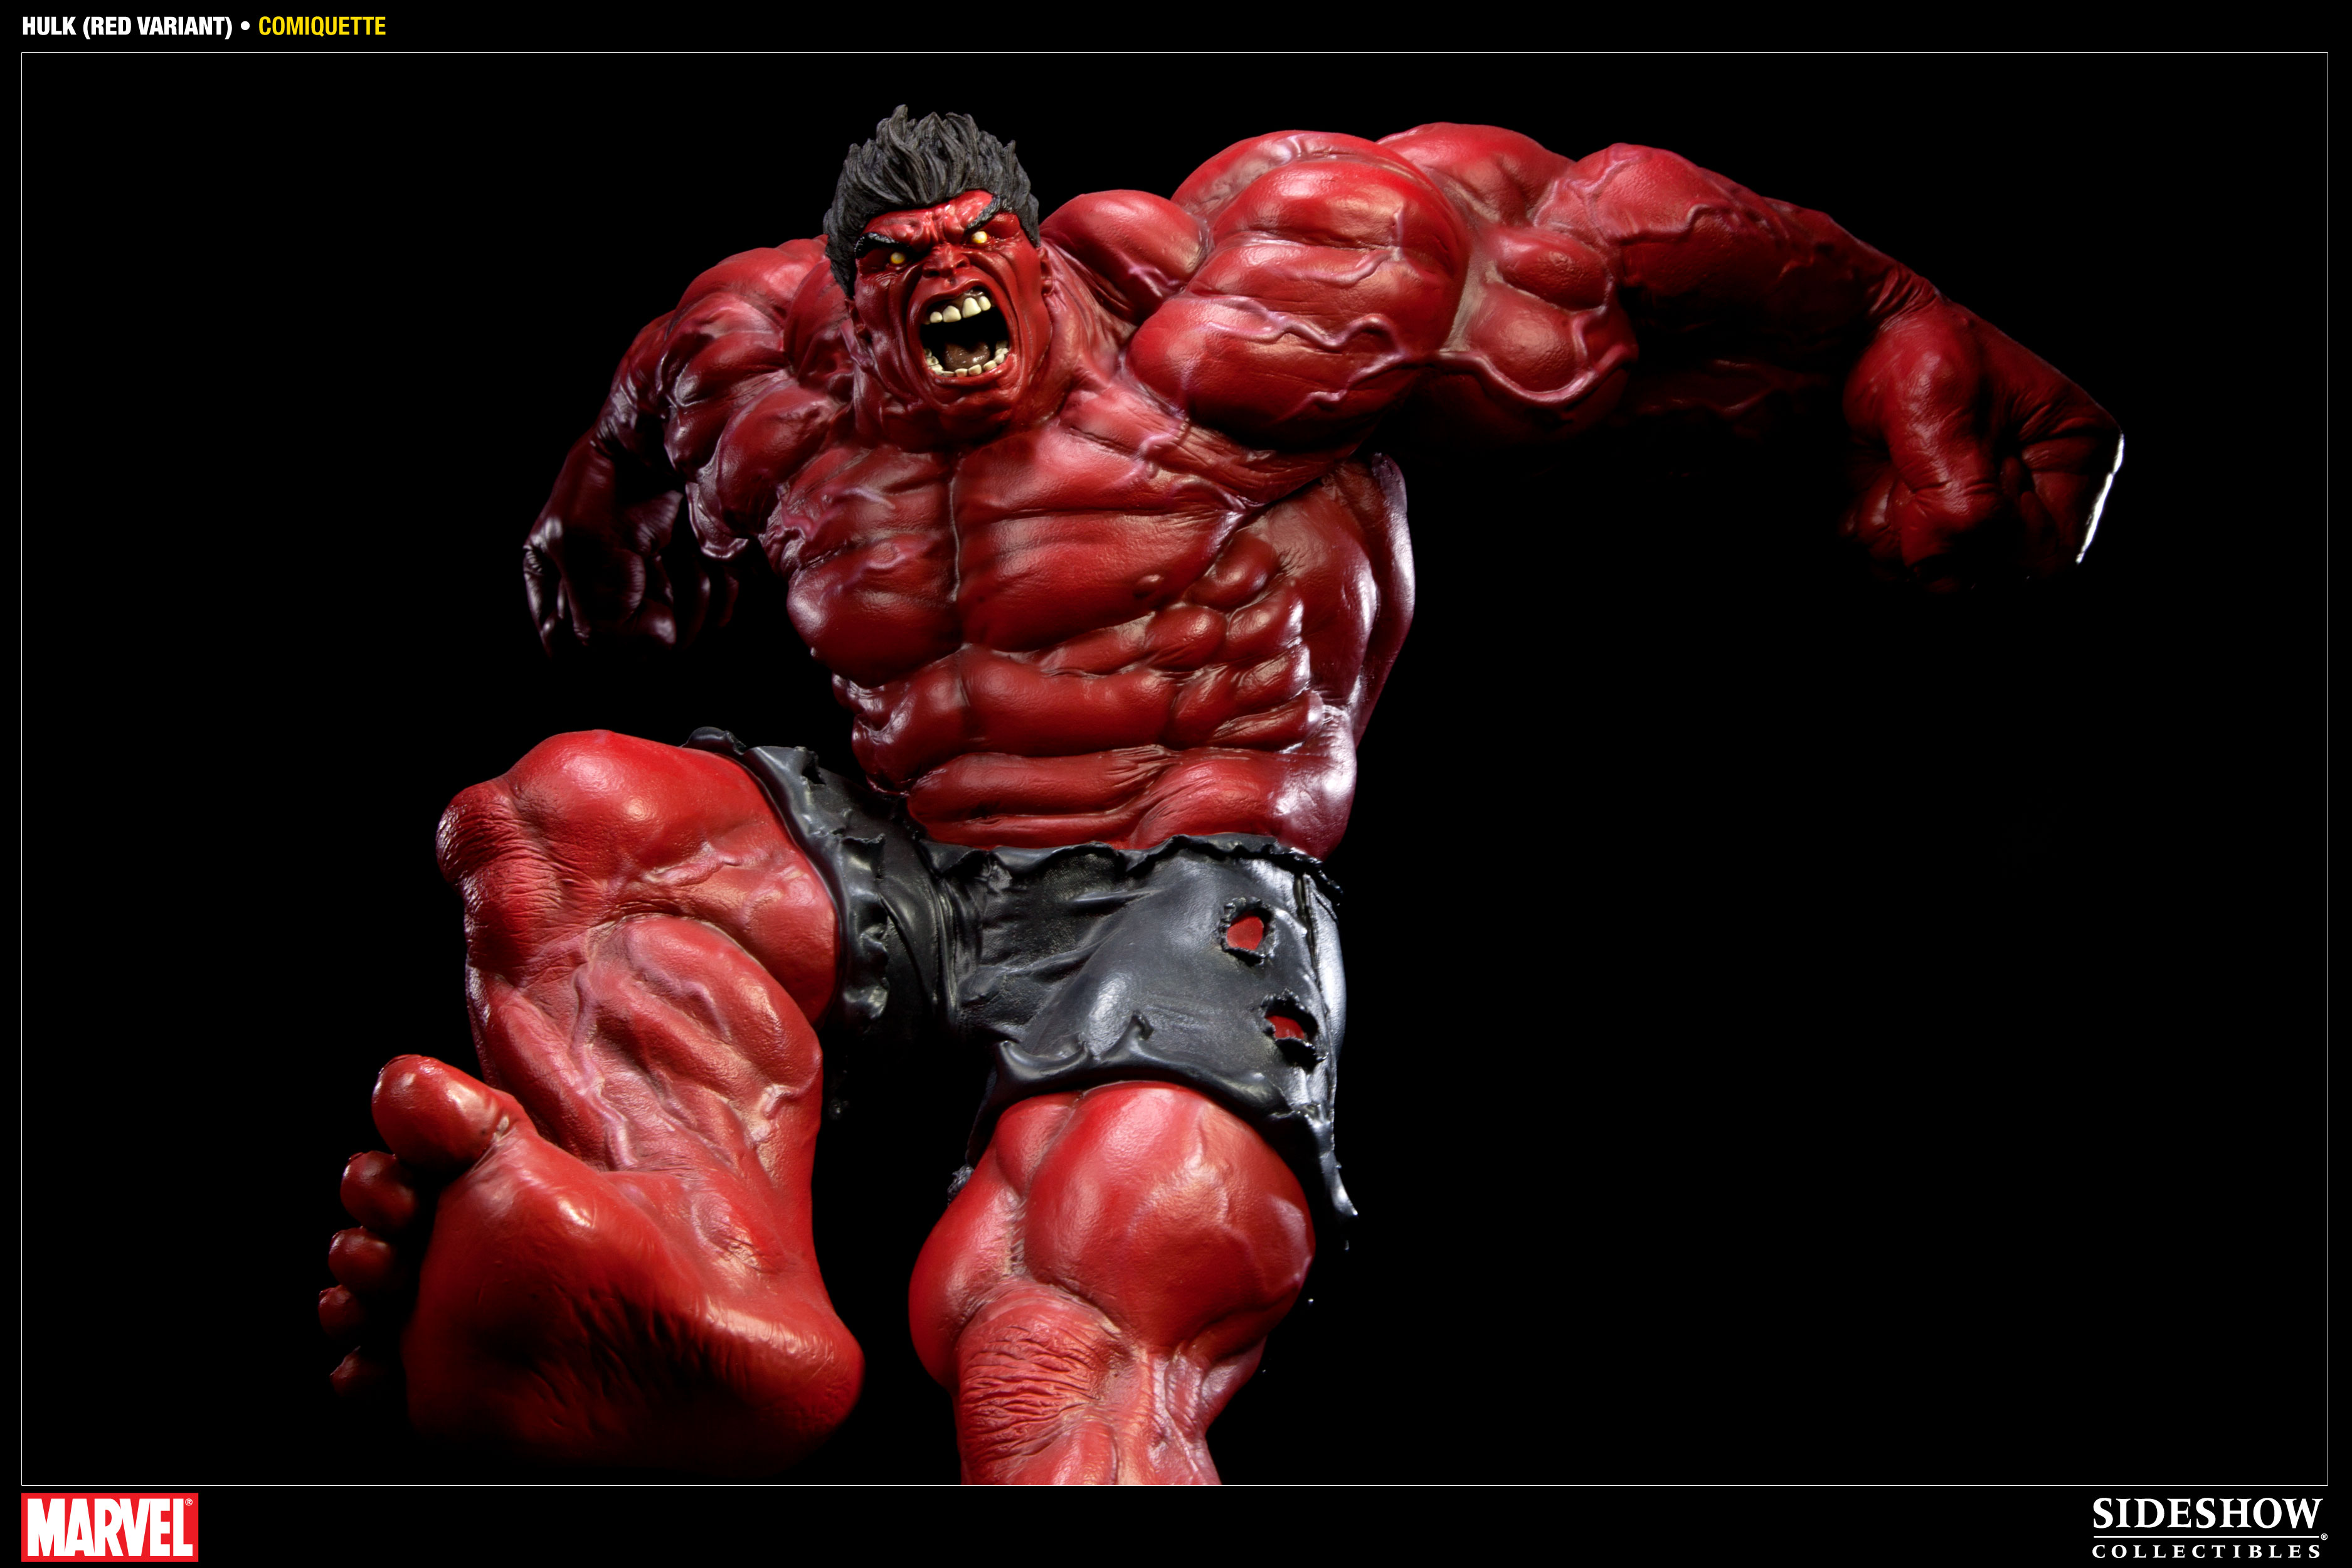 Sideshow - Pictures of red hulk ...